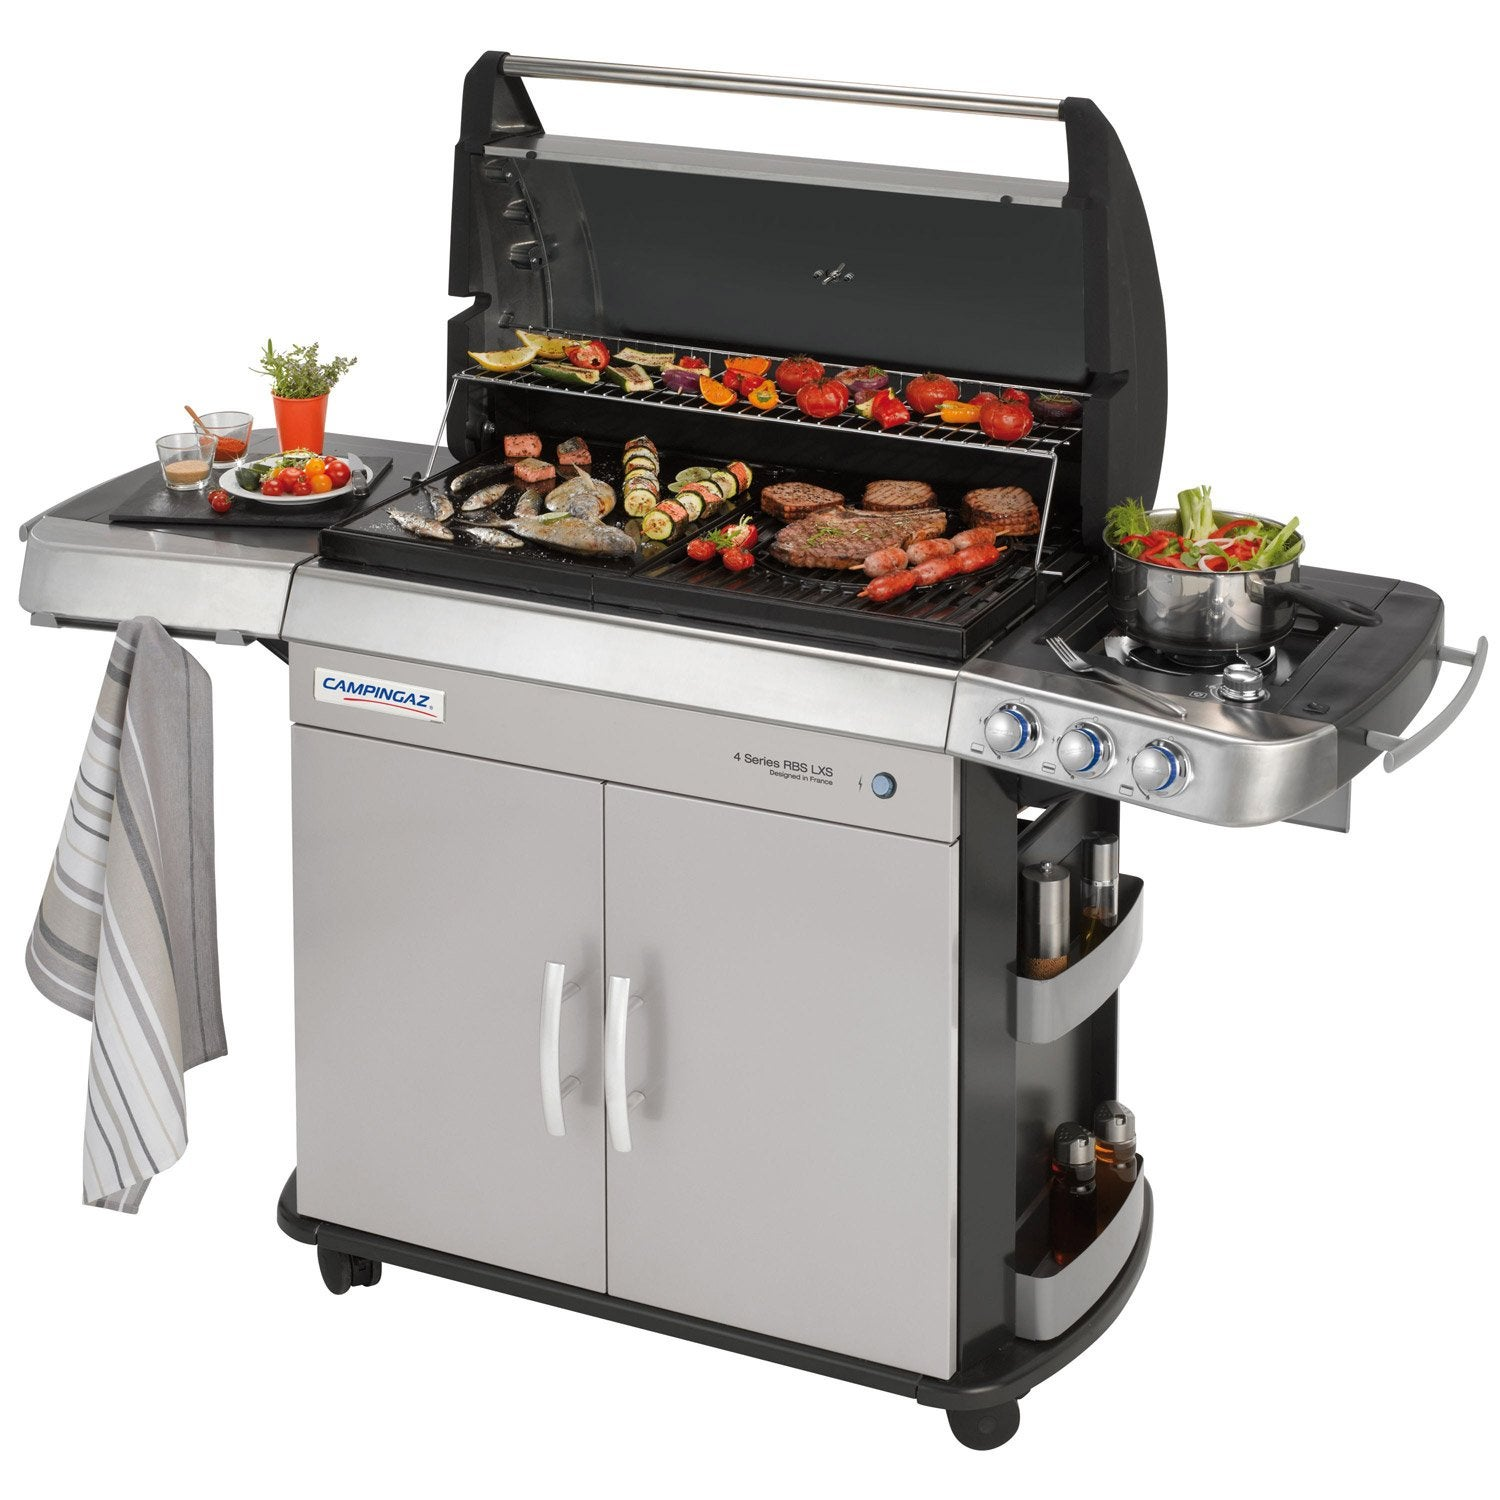 Barbecue au gaz campingaz 4 s ries rbs gris leroy merlin for Barbecue a gaz leroy merlin